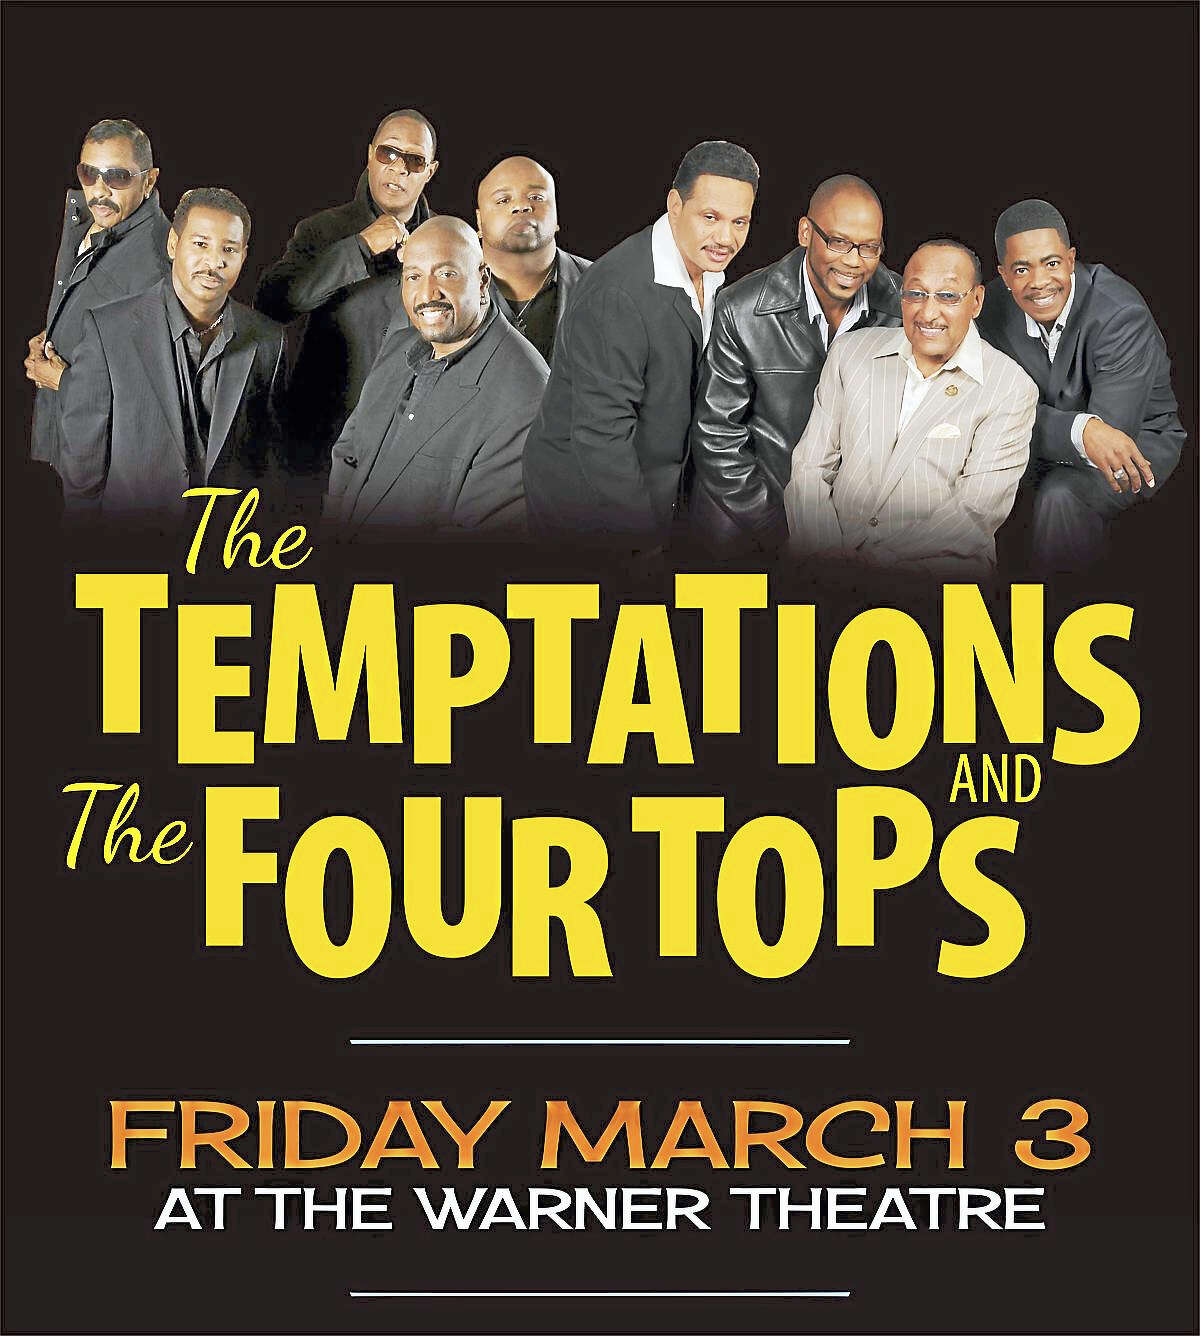 Contributed photoThe Temptations and the Four Tops are coming to the Warner Theatre for one performance on Friday, March 3.